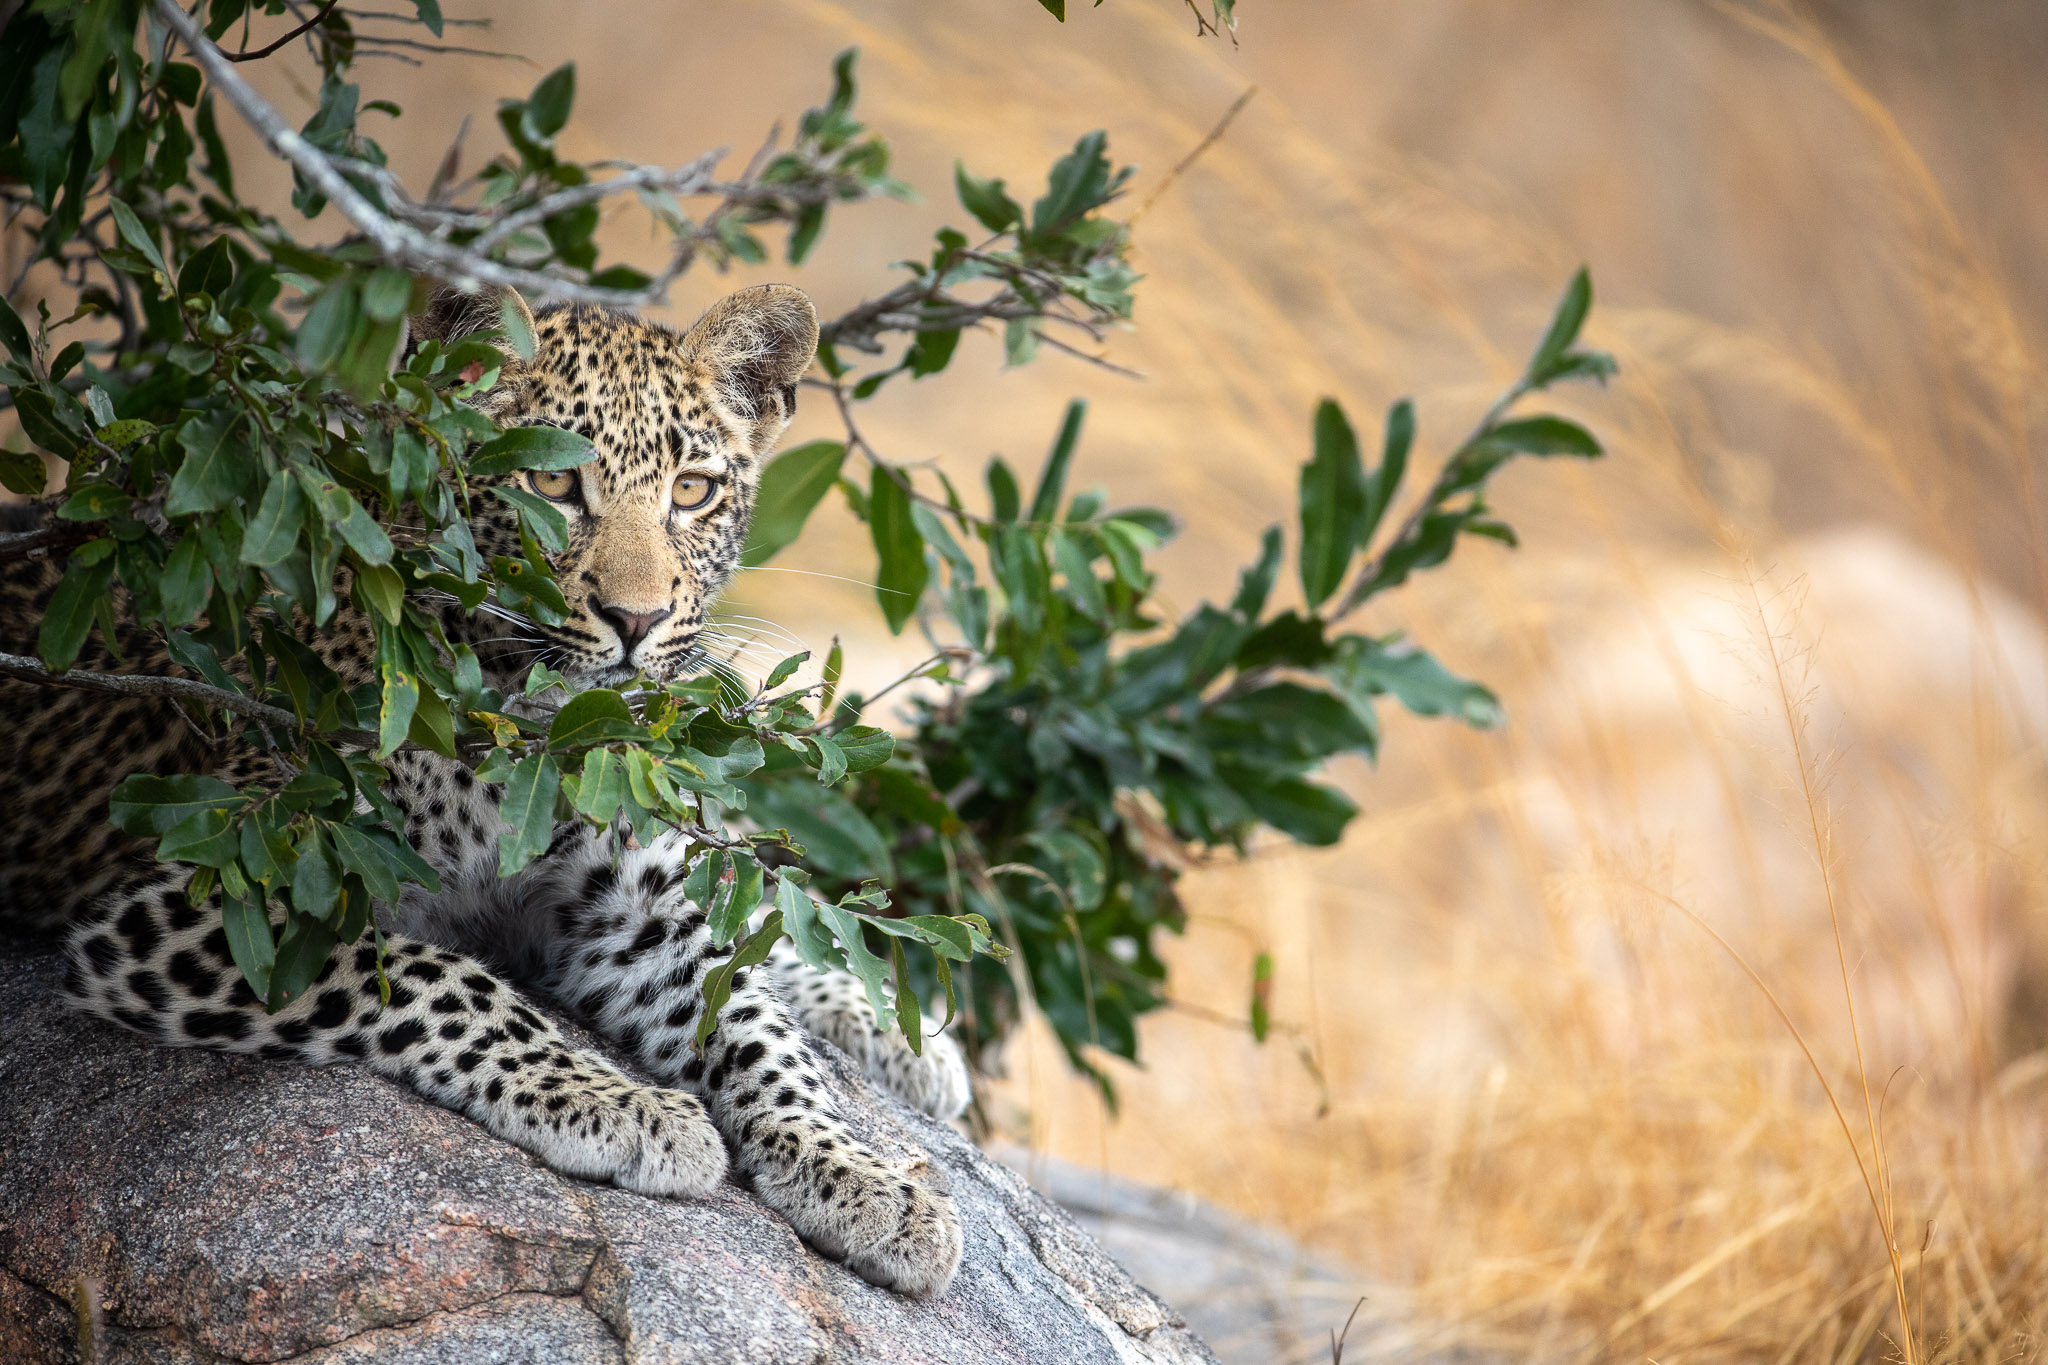 A leopard cub looking out from behind a bush